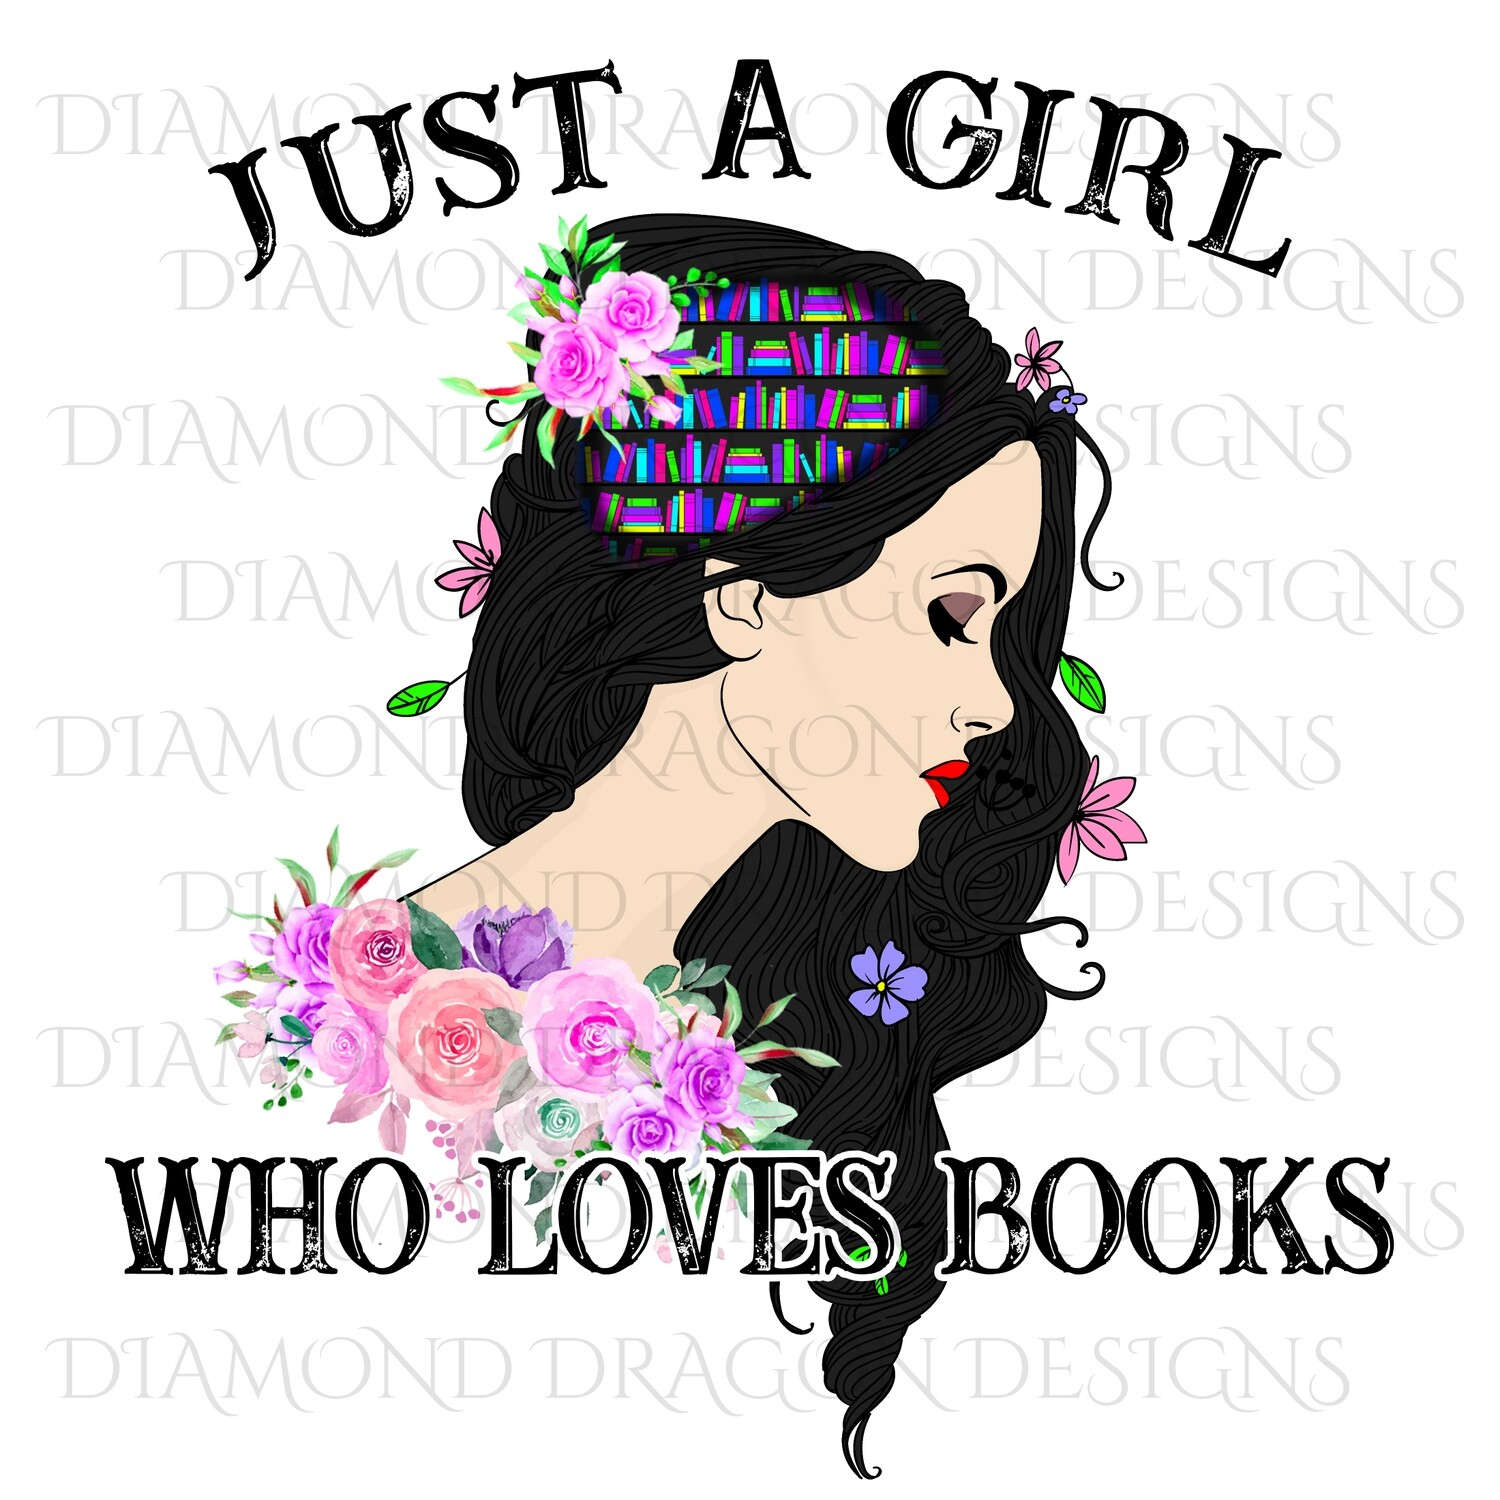 Books - Whimsical, Black Haired, Just a Girl Who Loves Books, Lady Library, Book Girl, Book Lover, Pink Floral, Digital Image